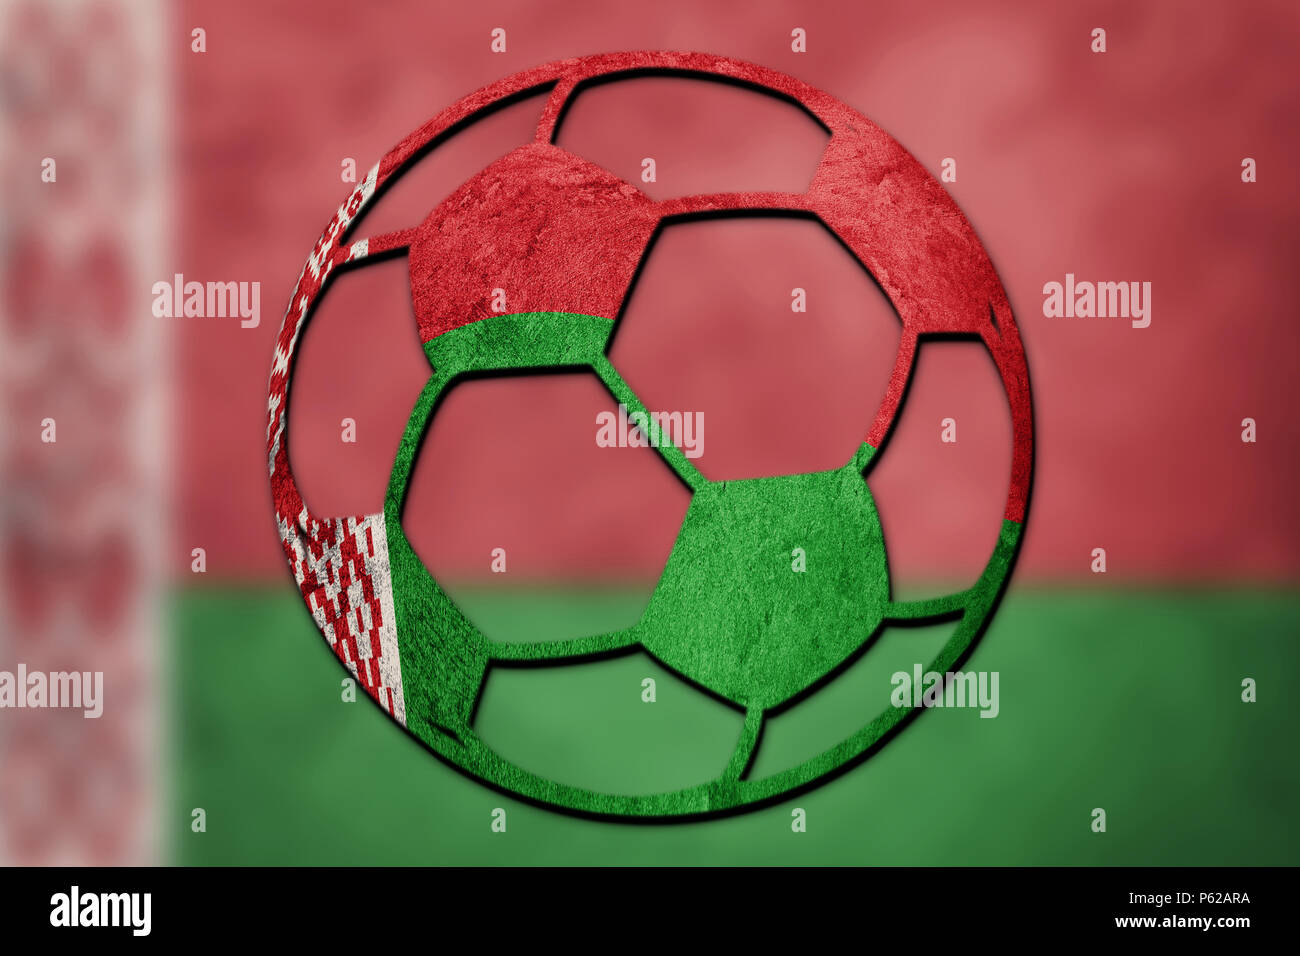 Soccer ball national Belarus flag. Belorussian football ball. Stock Photo